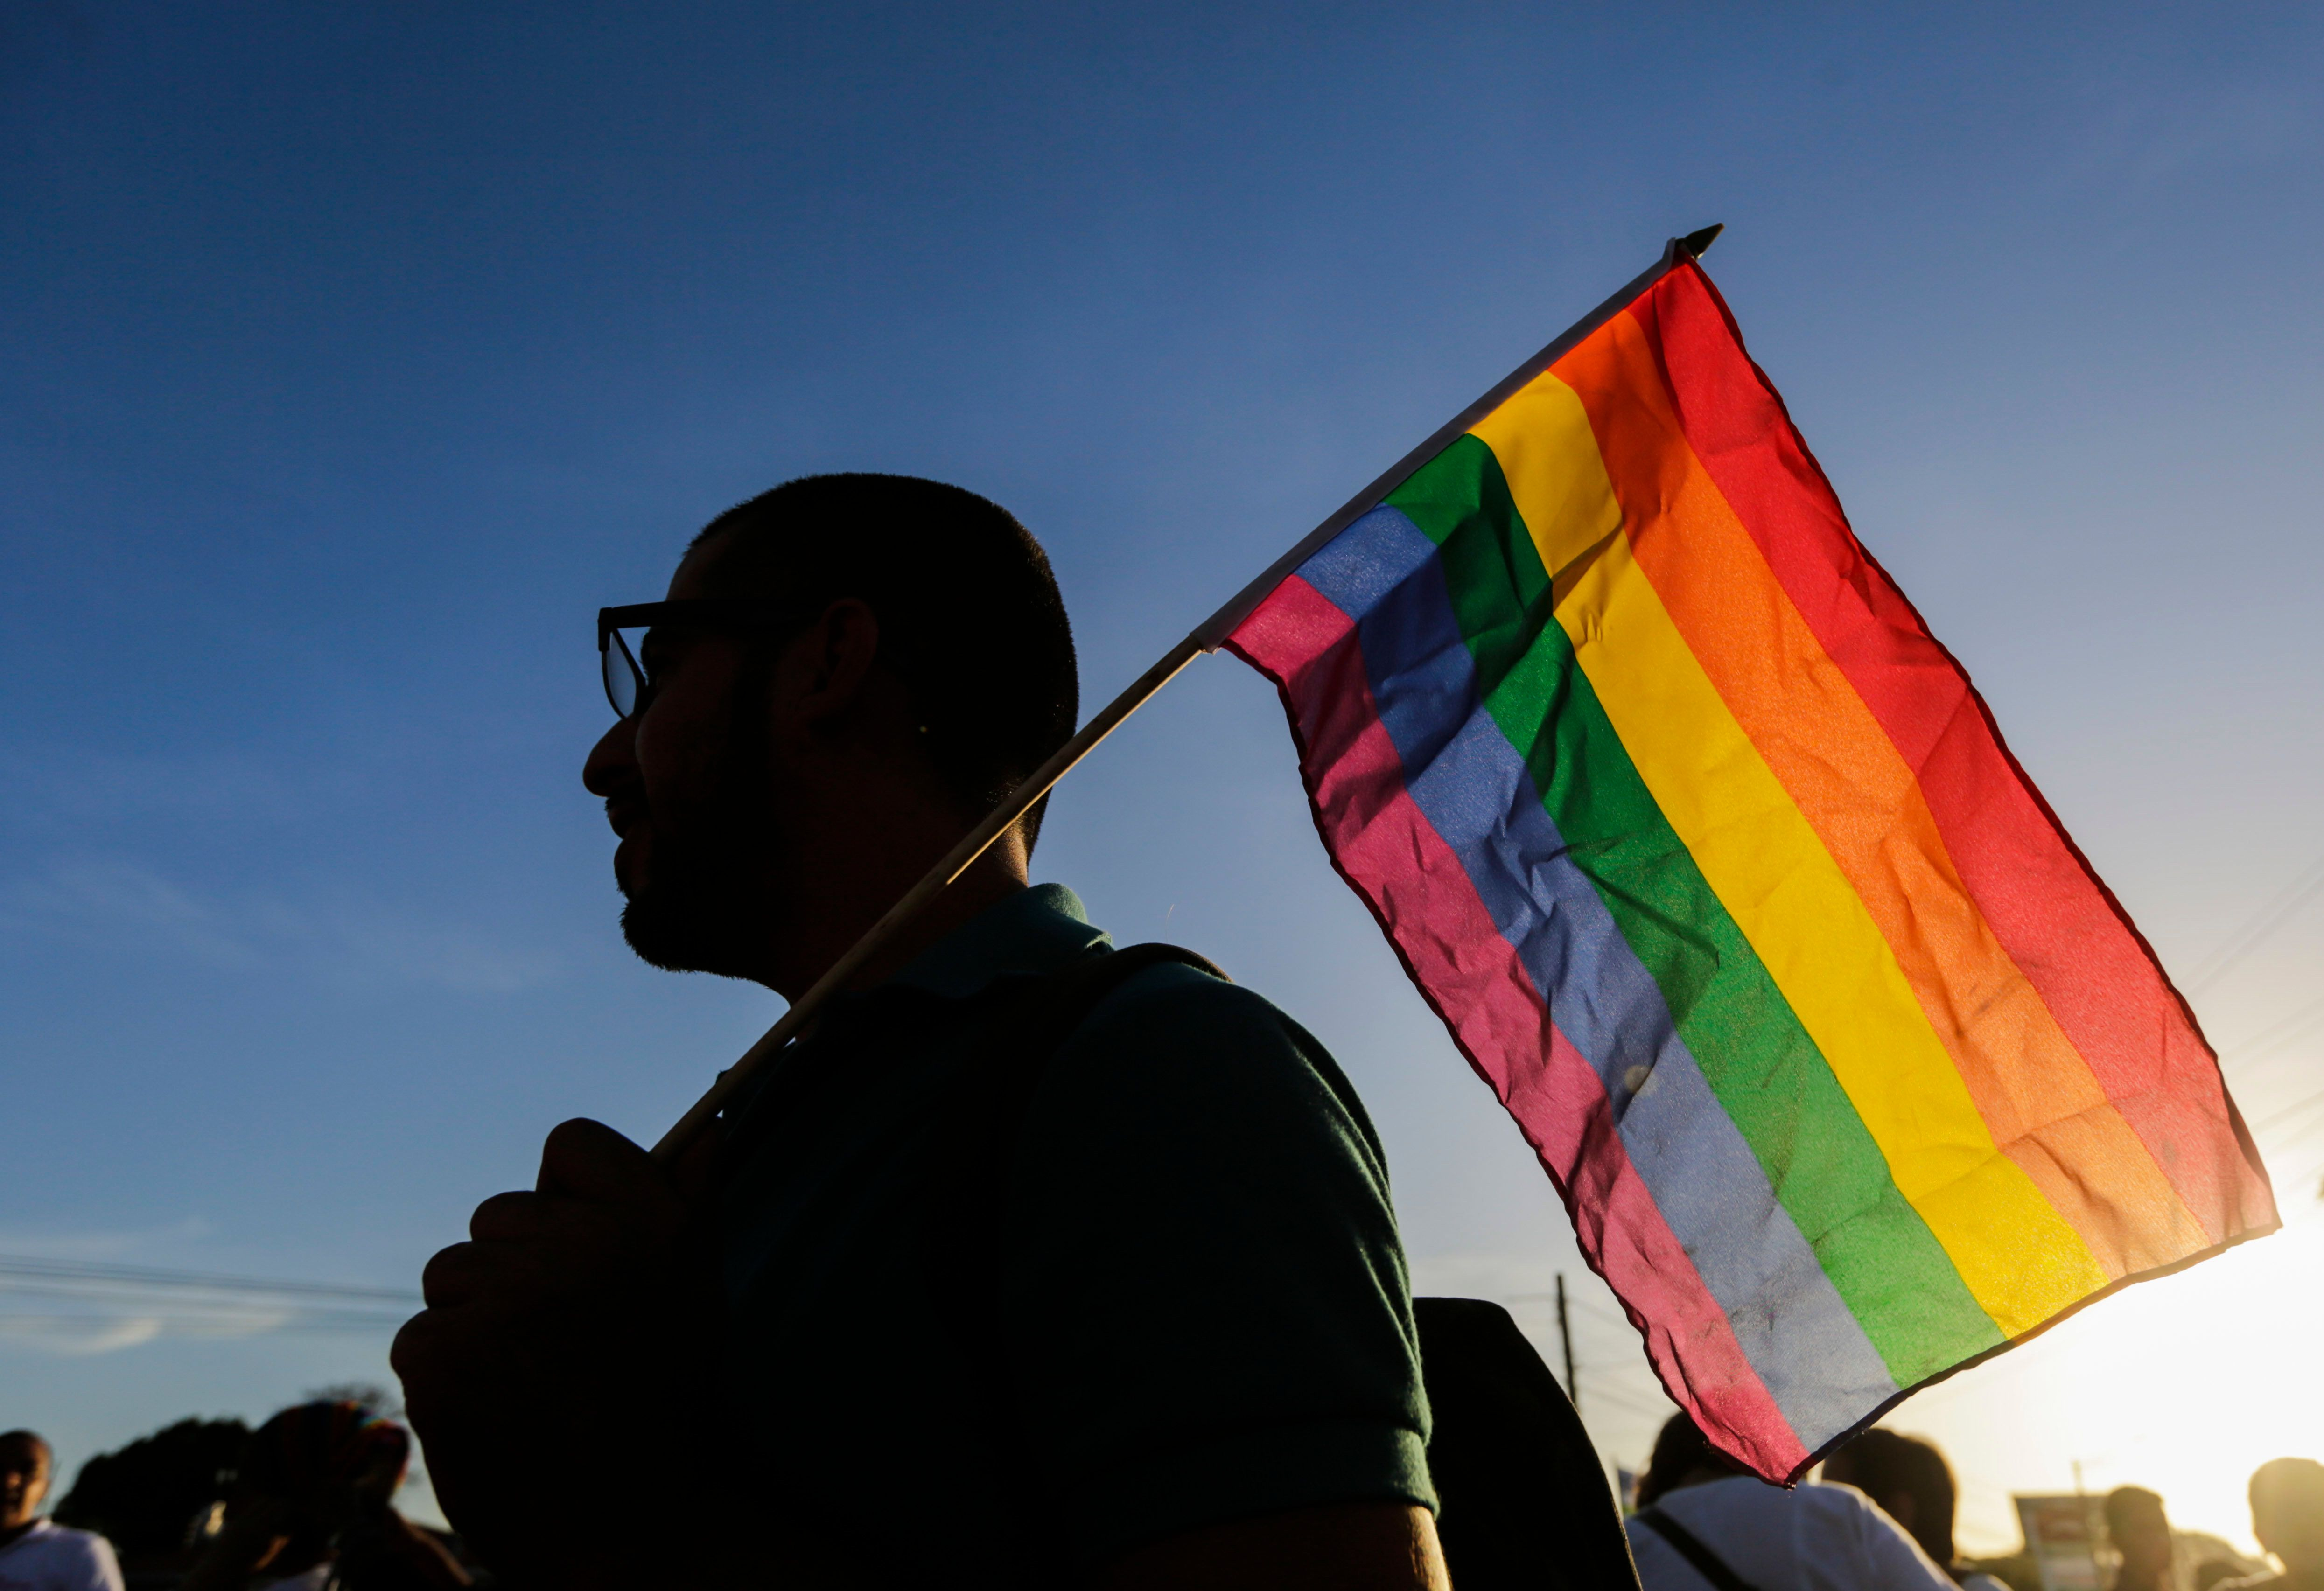 A Nicaraguan LGBT community member and supporter holds up a rainbow flag at the Metrocentro roundabout in Managua on June 14, 2016, in solidarity with the victims of the Orlando mass shooting.  Forty-nine people were killed and 53 others wounded when a heavily armed gunman opened fire and seized hostages at a popular gay nightclub in Orlando, Florida -- the worst terror attack on US soil since September 11, 2001. / AFP / INTI OCON        (Photo credit should read INTI OCON/AFP/Getty Images)